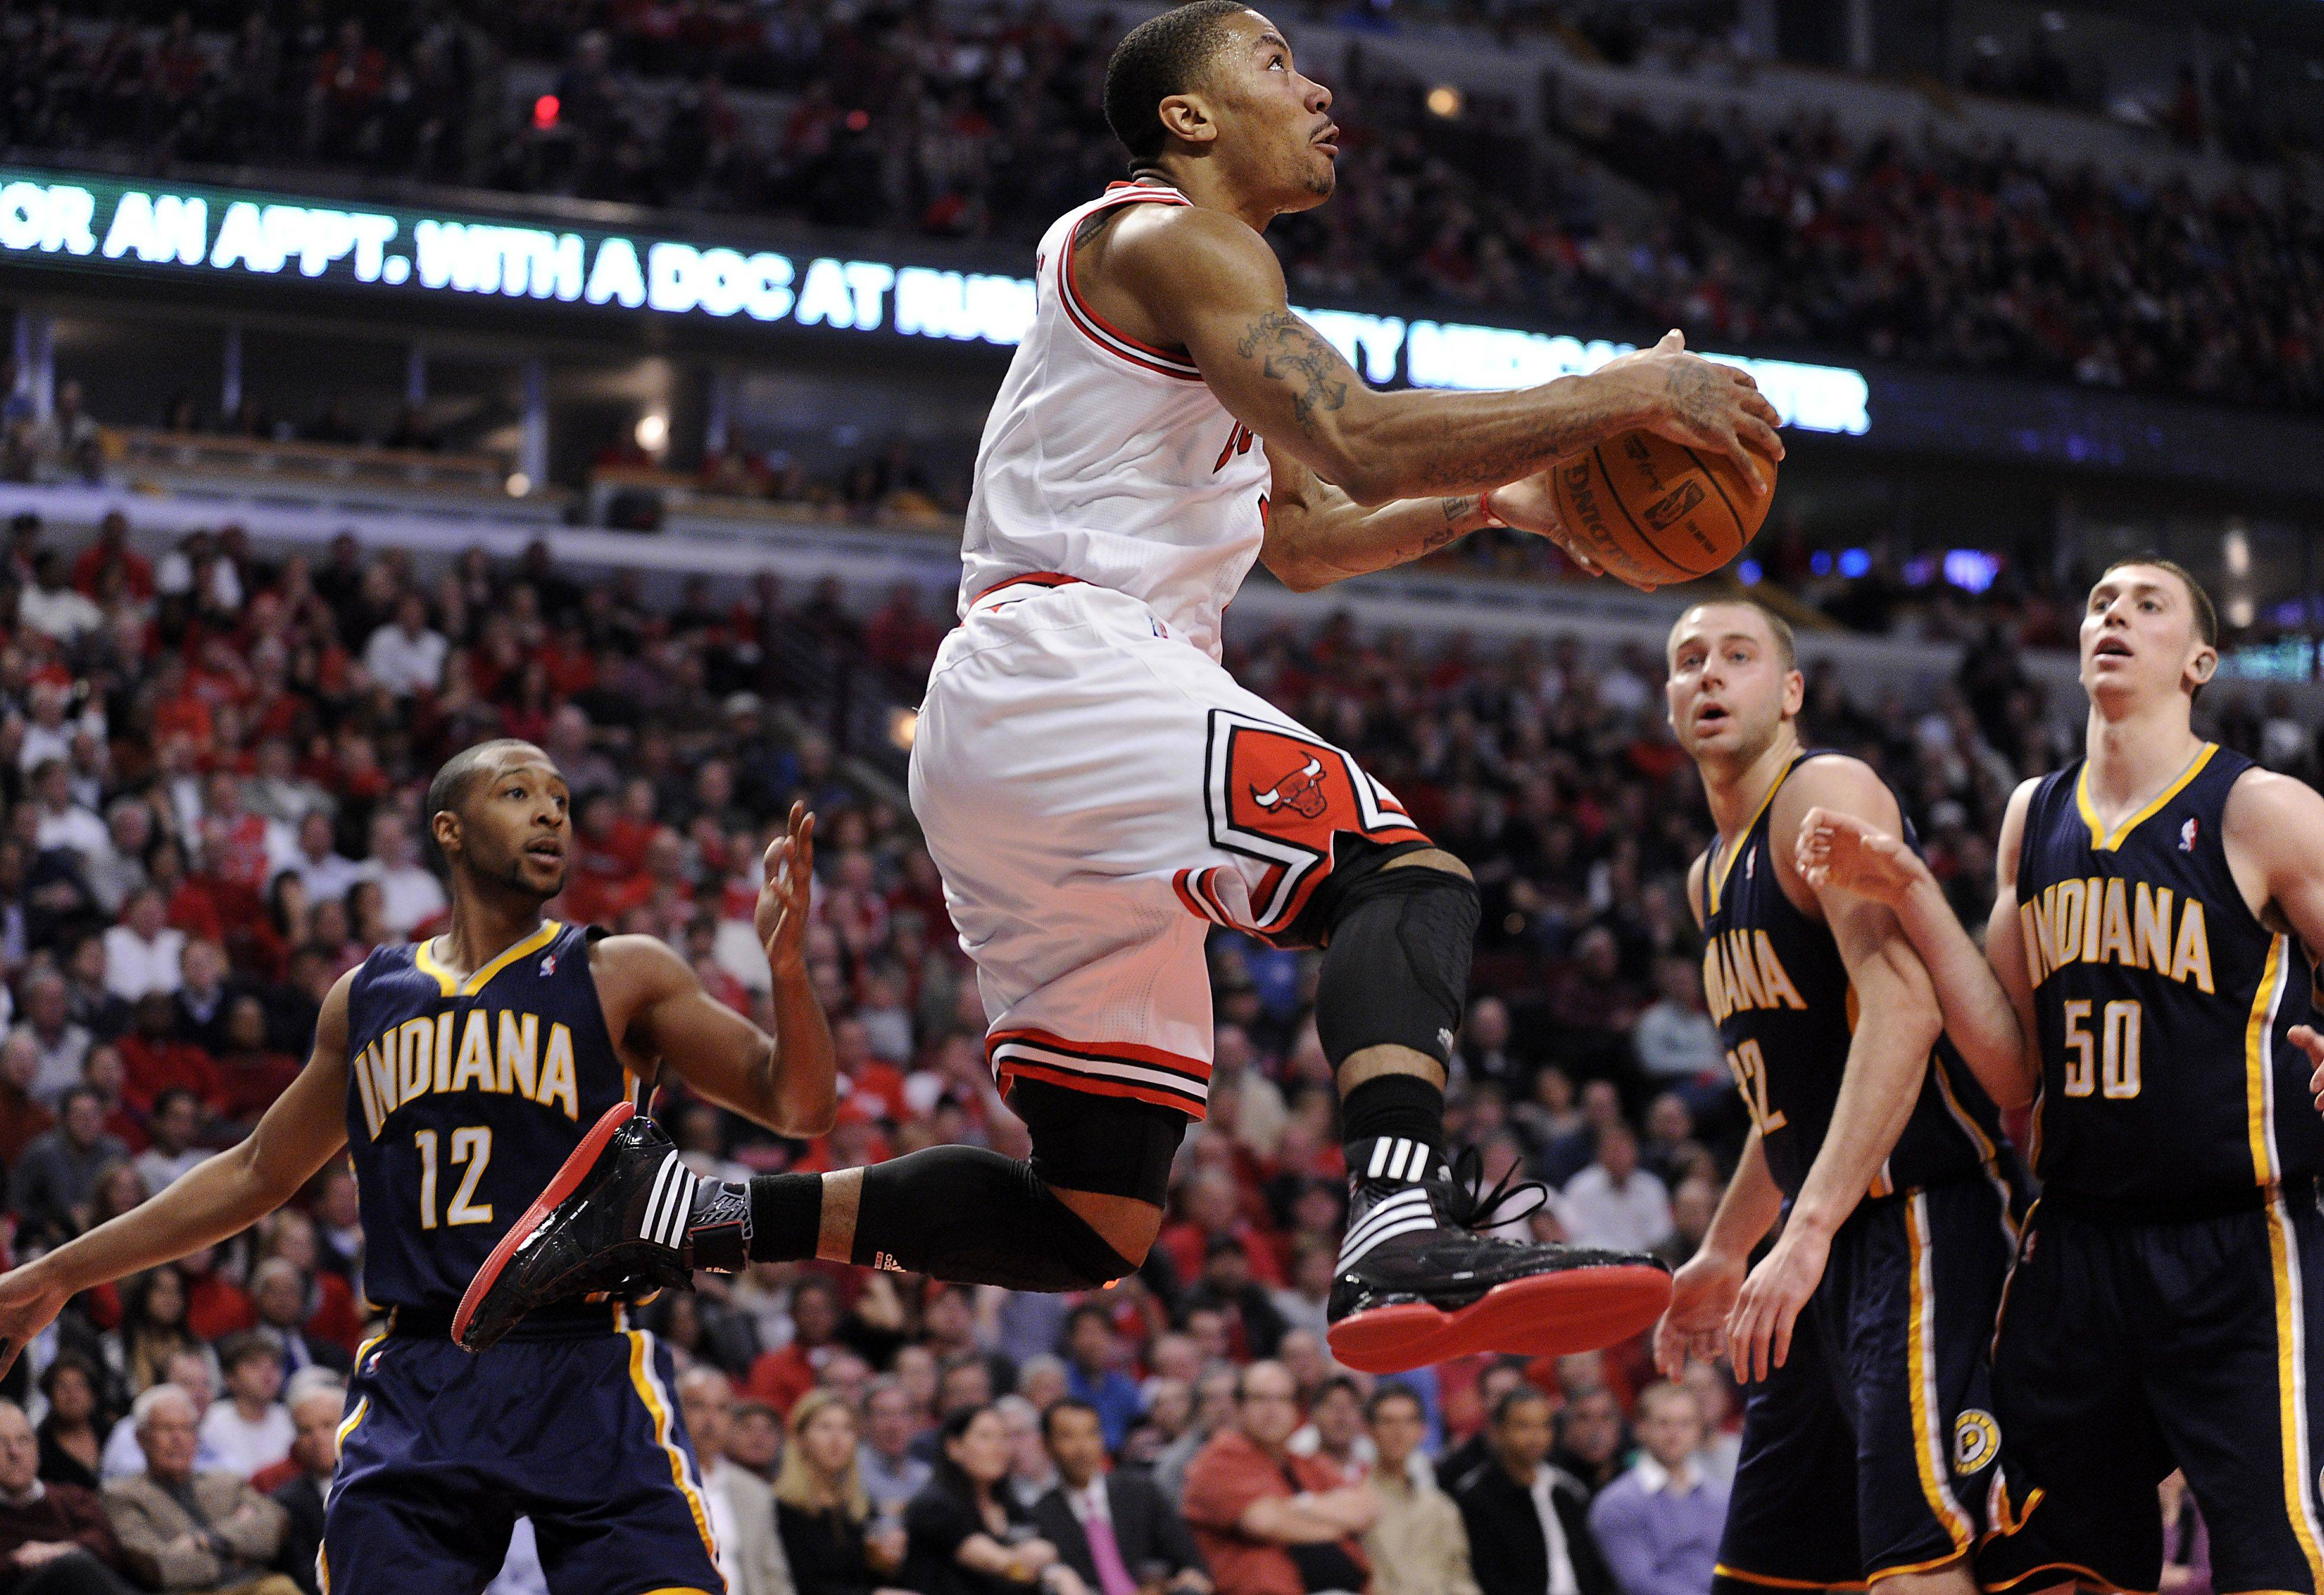 Derrick Rose goes airborne for the bucket in the second half.